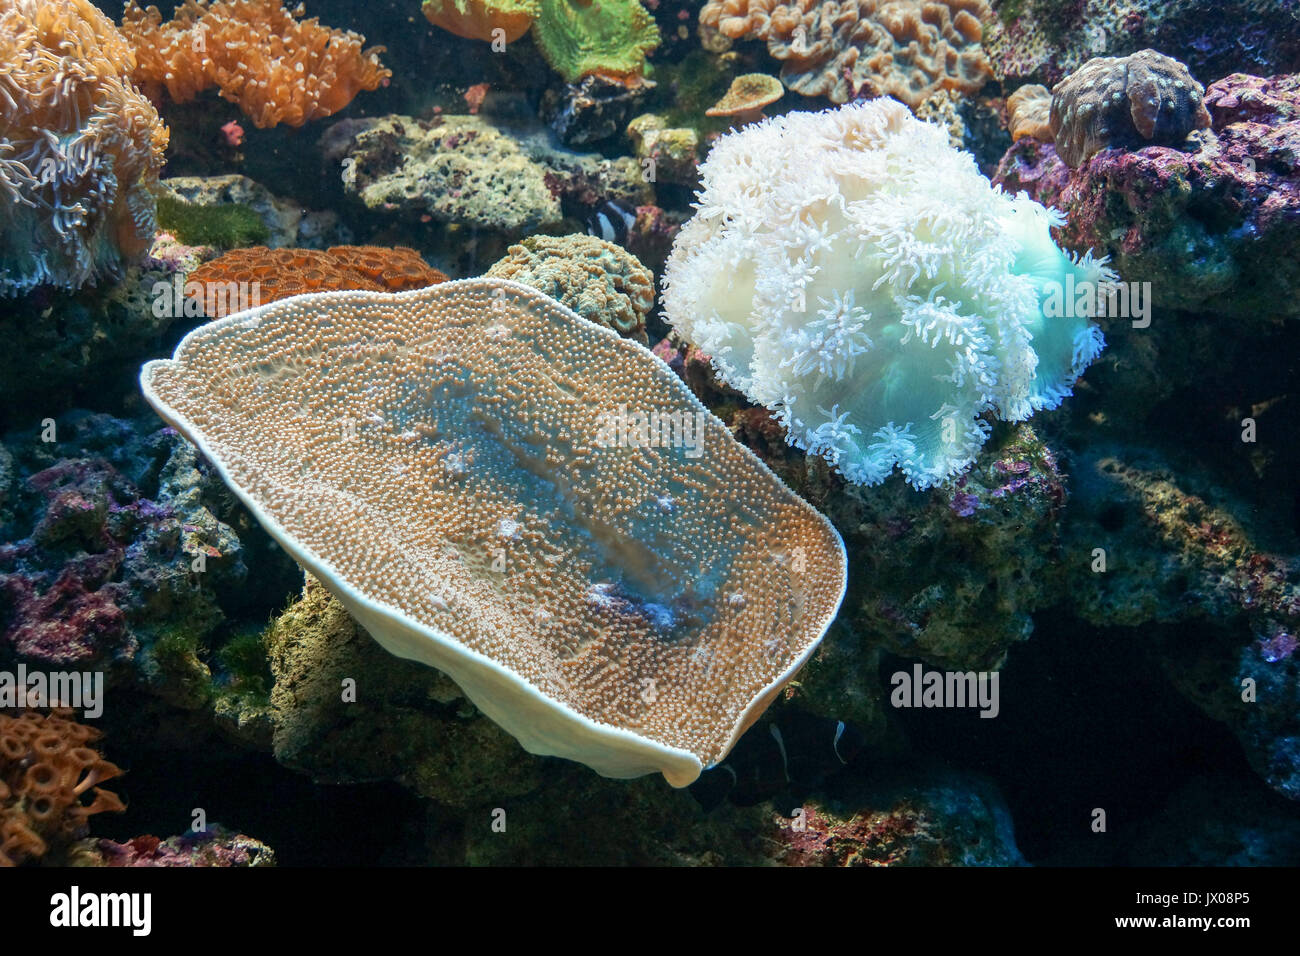 Coral reef with many different types of coral - Stock Image